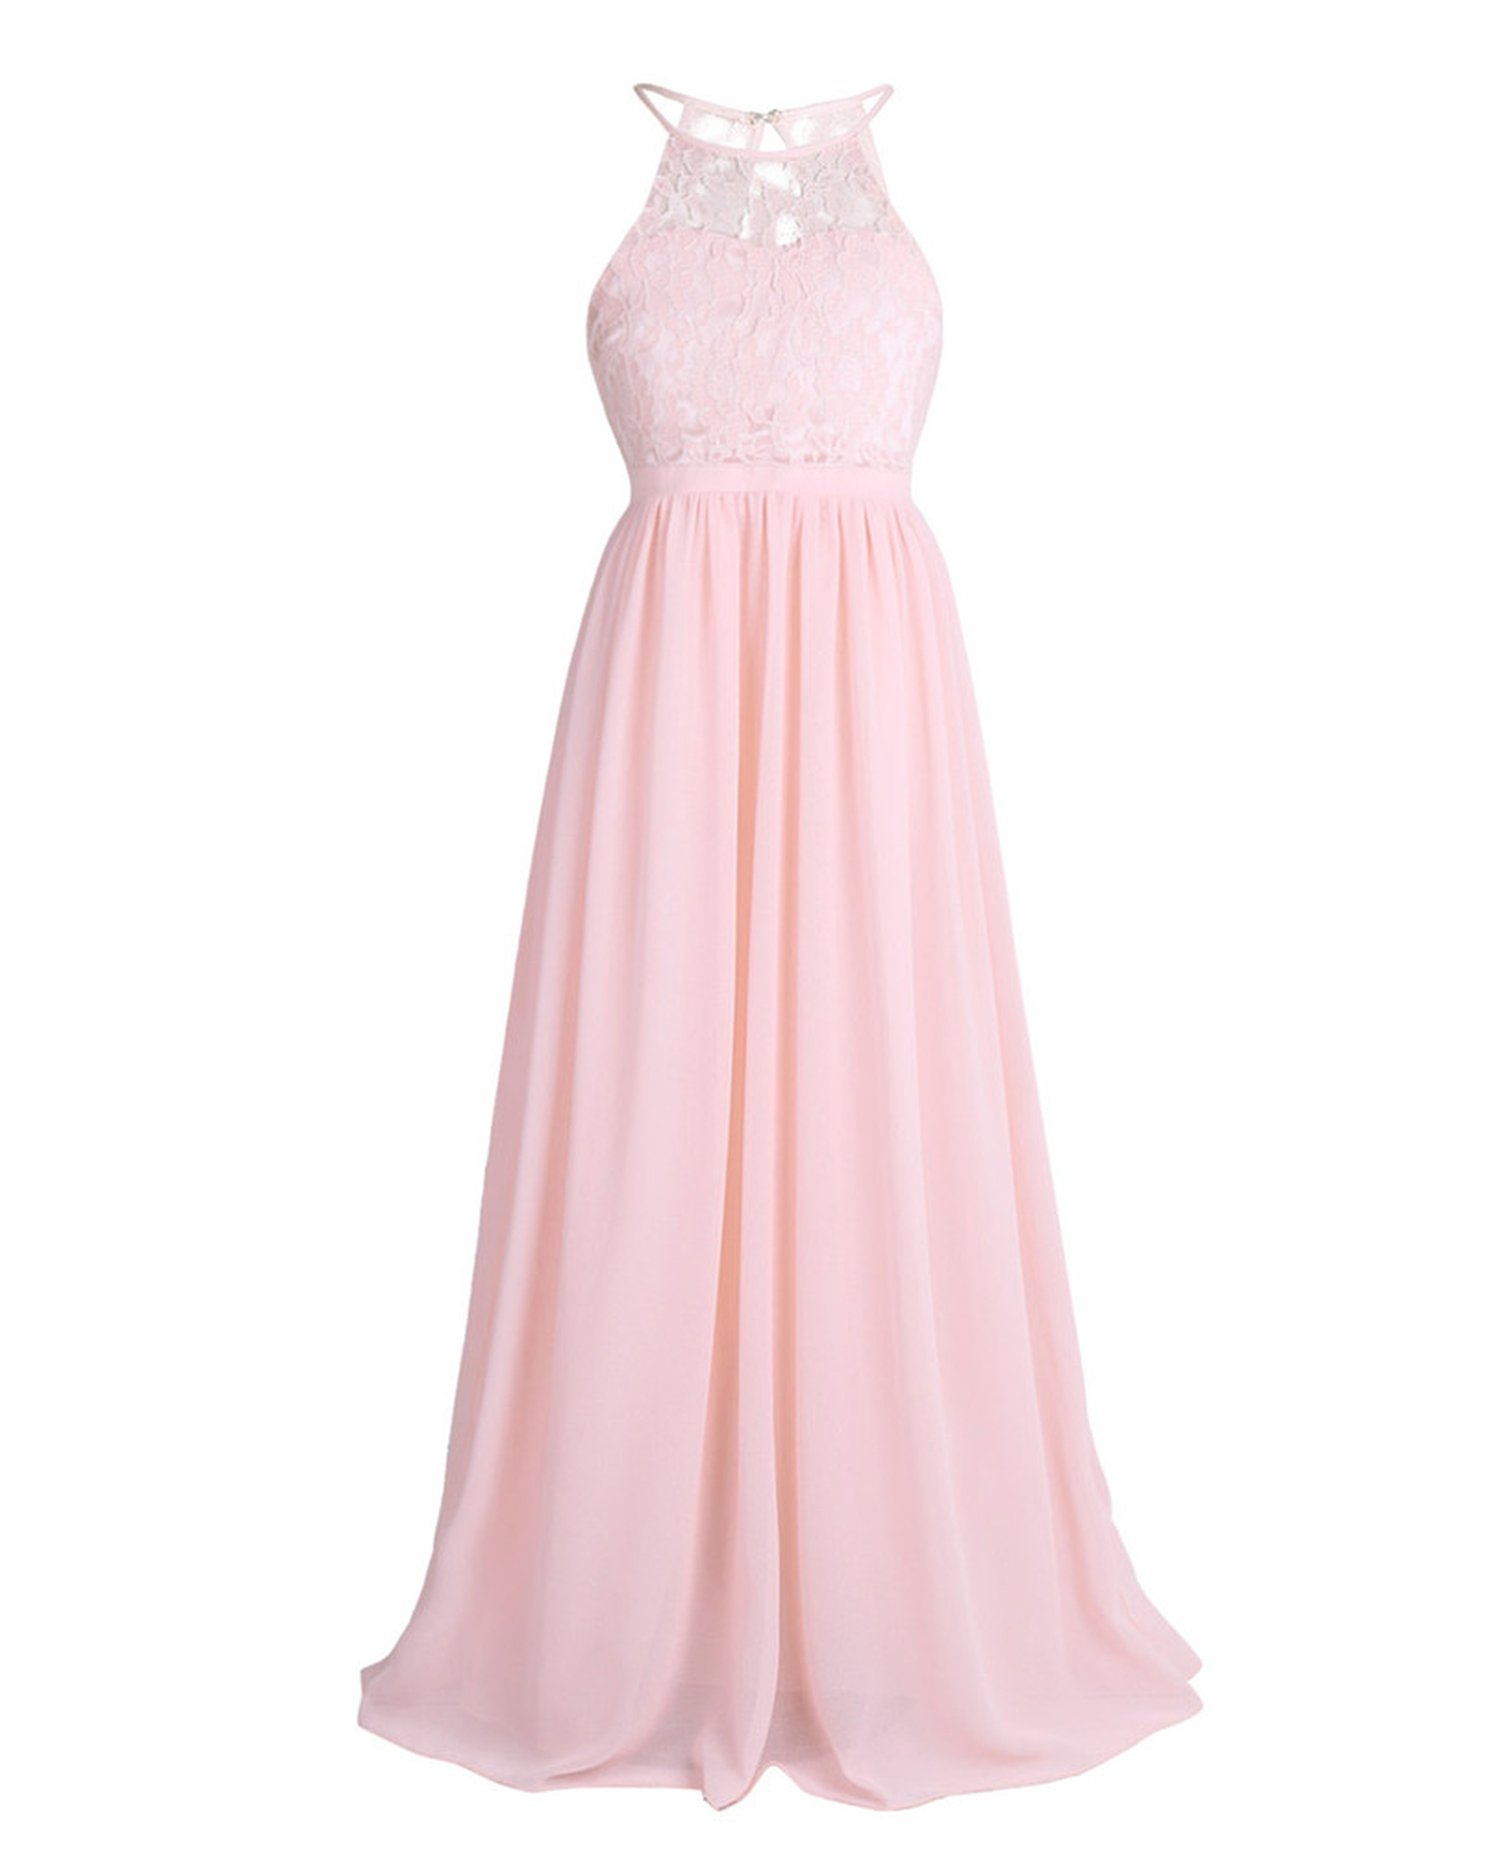 Girls Lace Chiffon Sleeveless Halter Flower Girl Dress Princess Pageant A-Line Hollow Out Formal Wedding Party Dress,Pearl Pink,Child-14